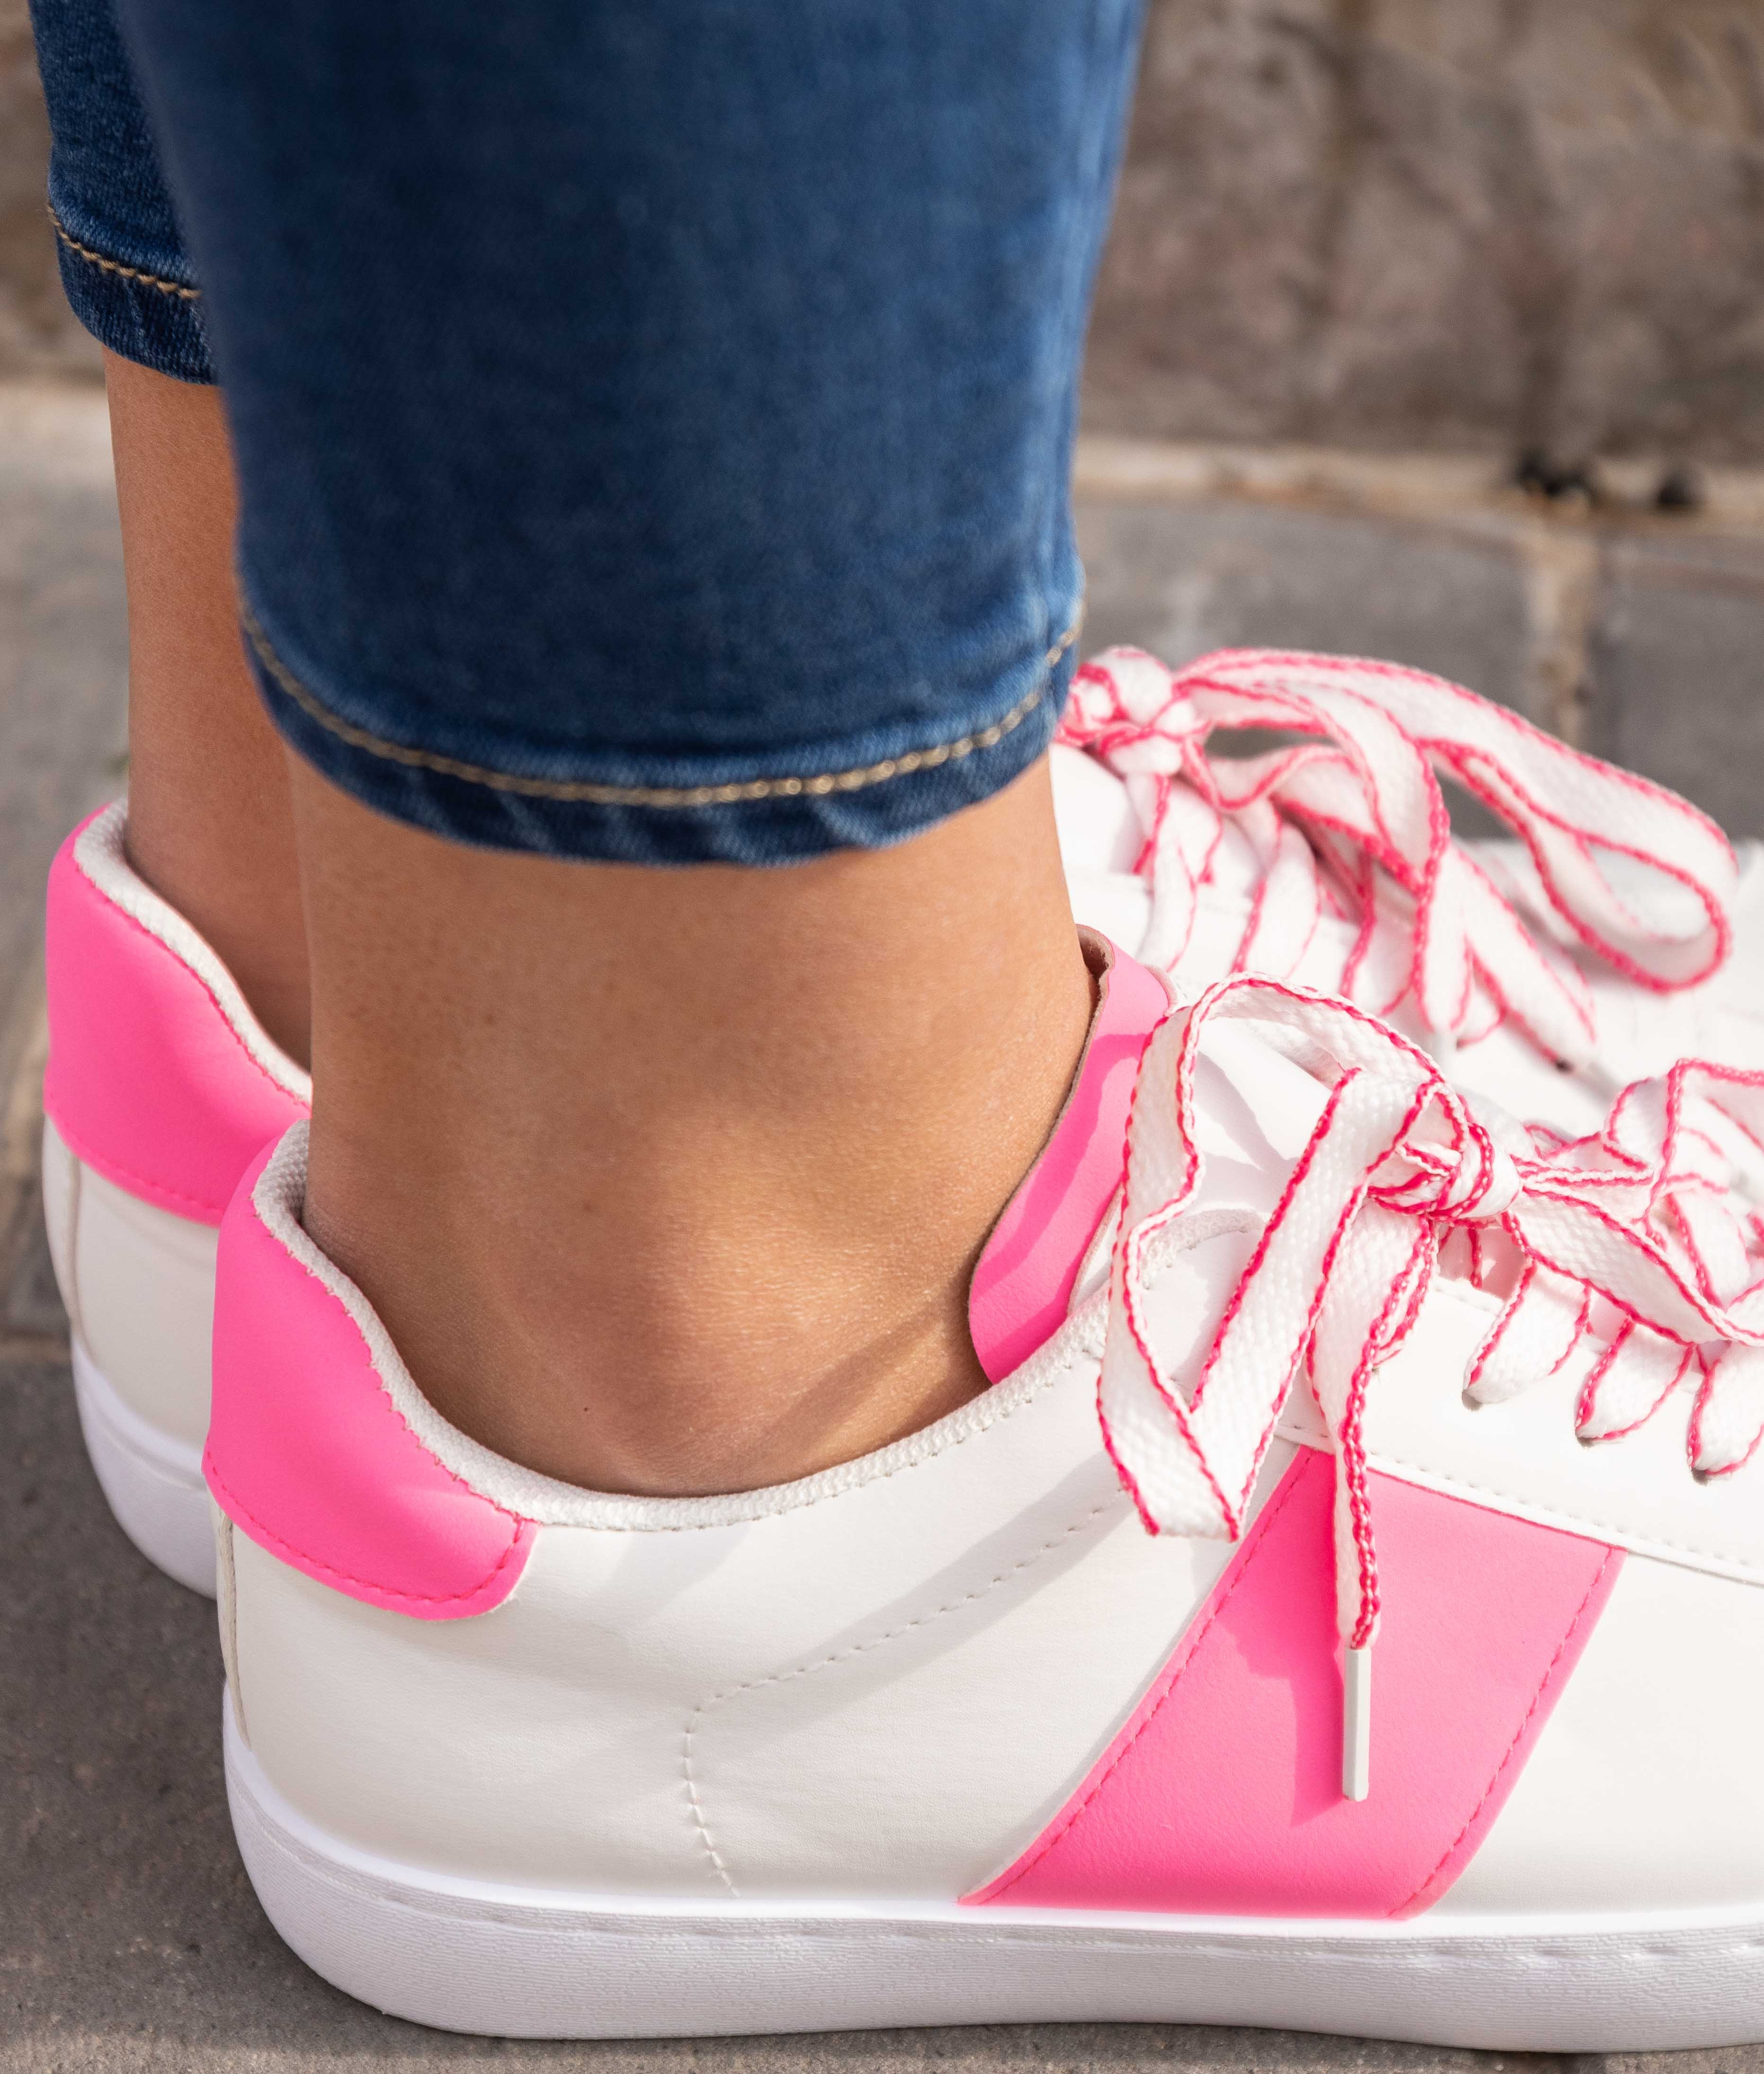 Sneakers Anubes - Pink